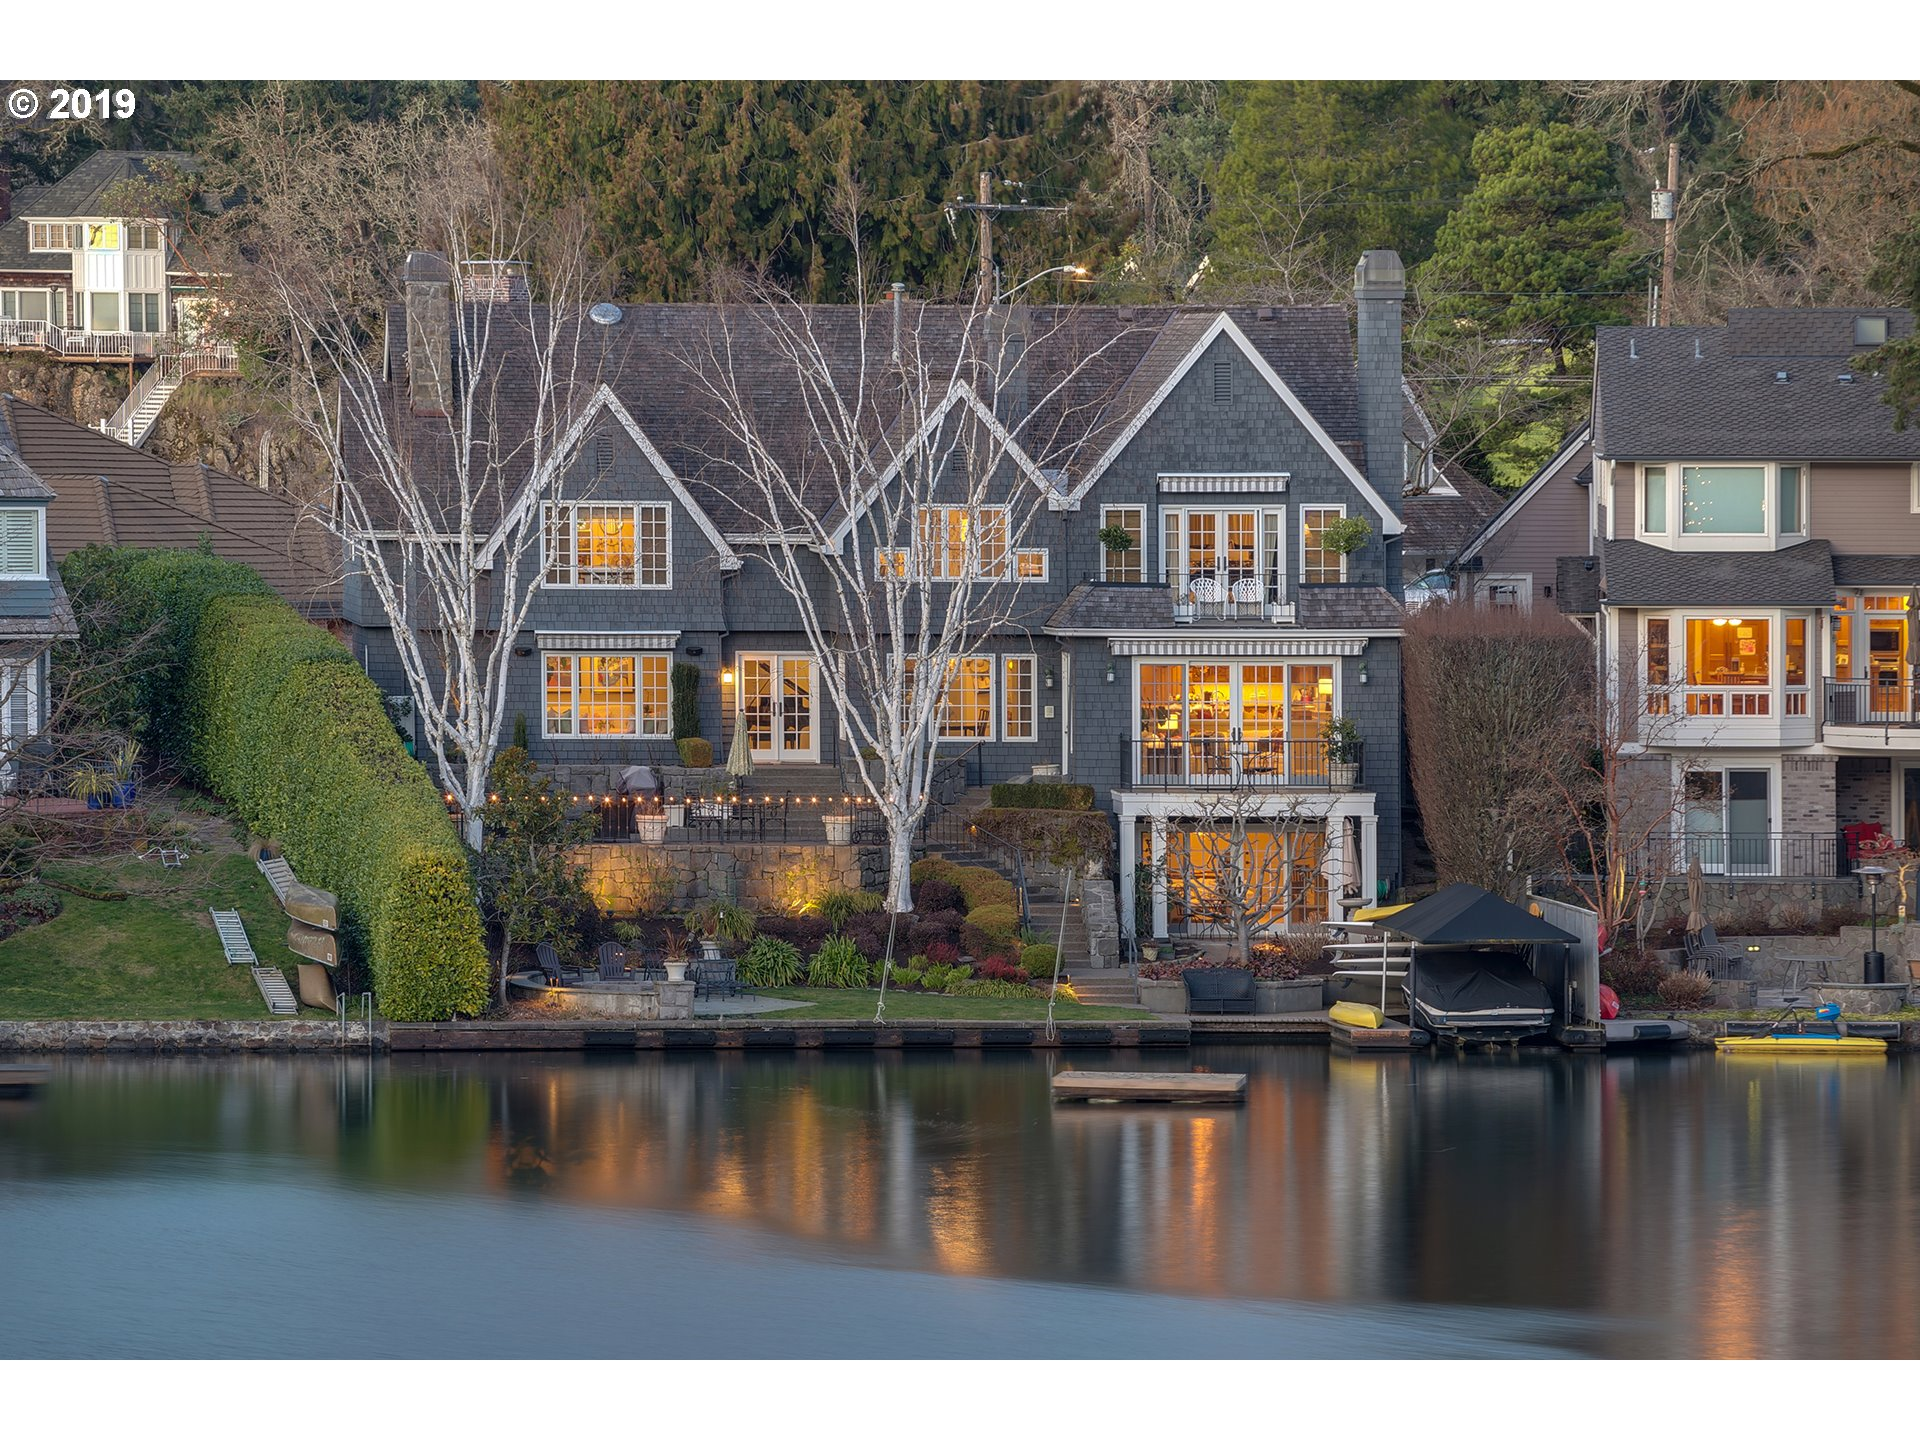 Waterfront Lake Oswego home on The Peninsula of the main lake. Four bdrms with 2 lake view master suites & 4 floors of living space. Built in 1936 & remodeled with historical charm & modern amenities. Combo high/low bank with covered slip w/lift & floating dock. Classic design warm hardwoods, open kitchen/great room, formal living & dining, 2nd family/game room & home gym. Tiered backyard with patio, grass & fire pit on lower lake level